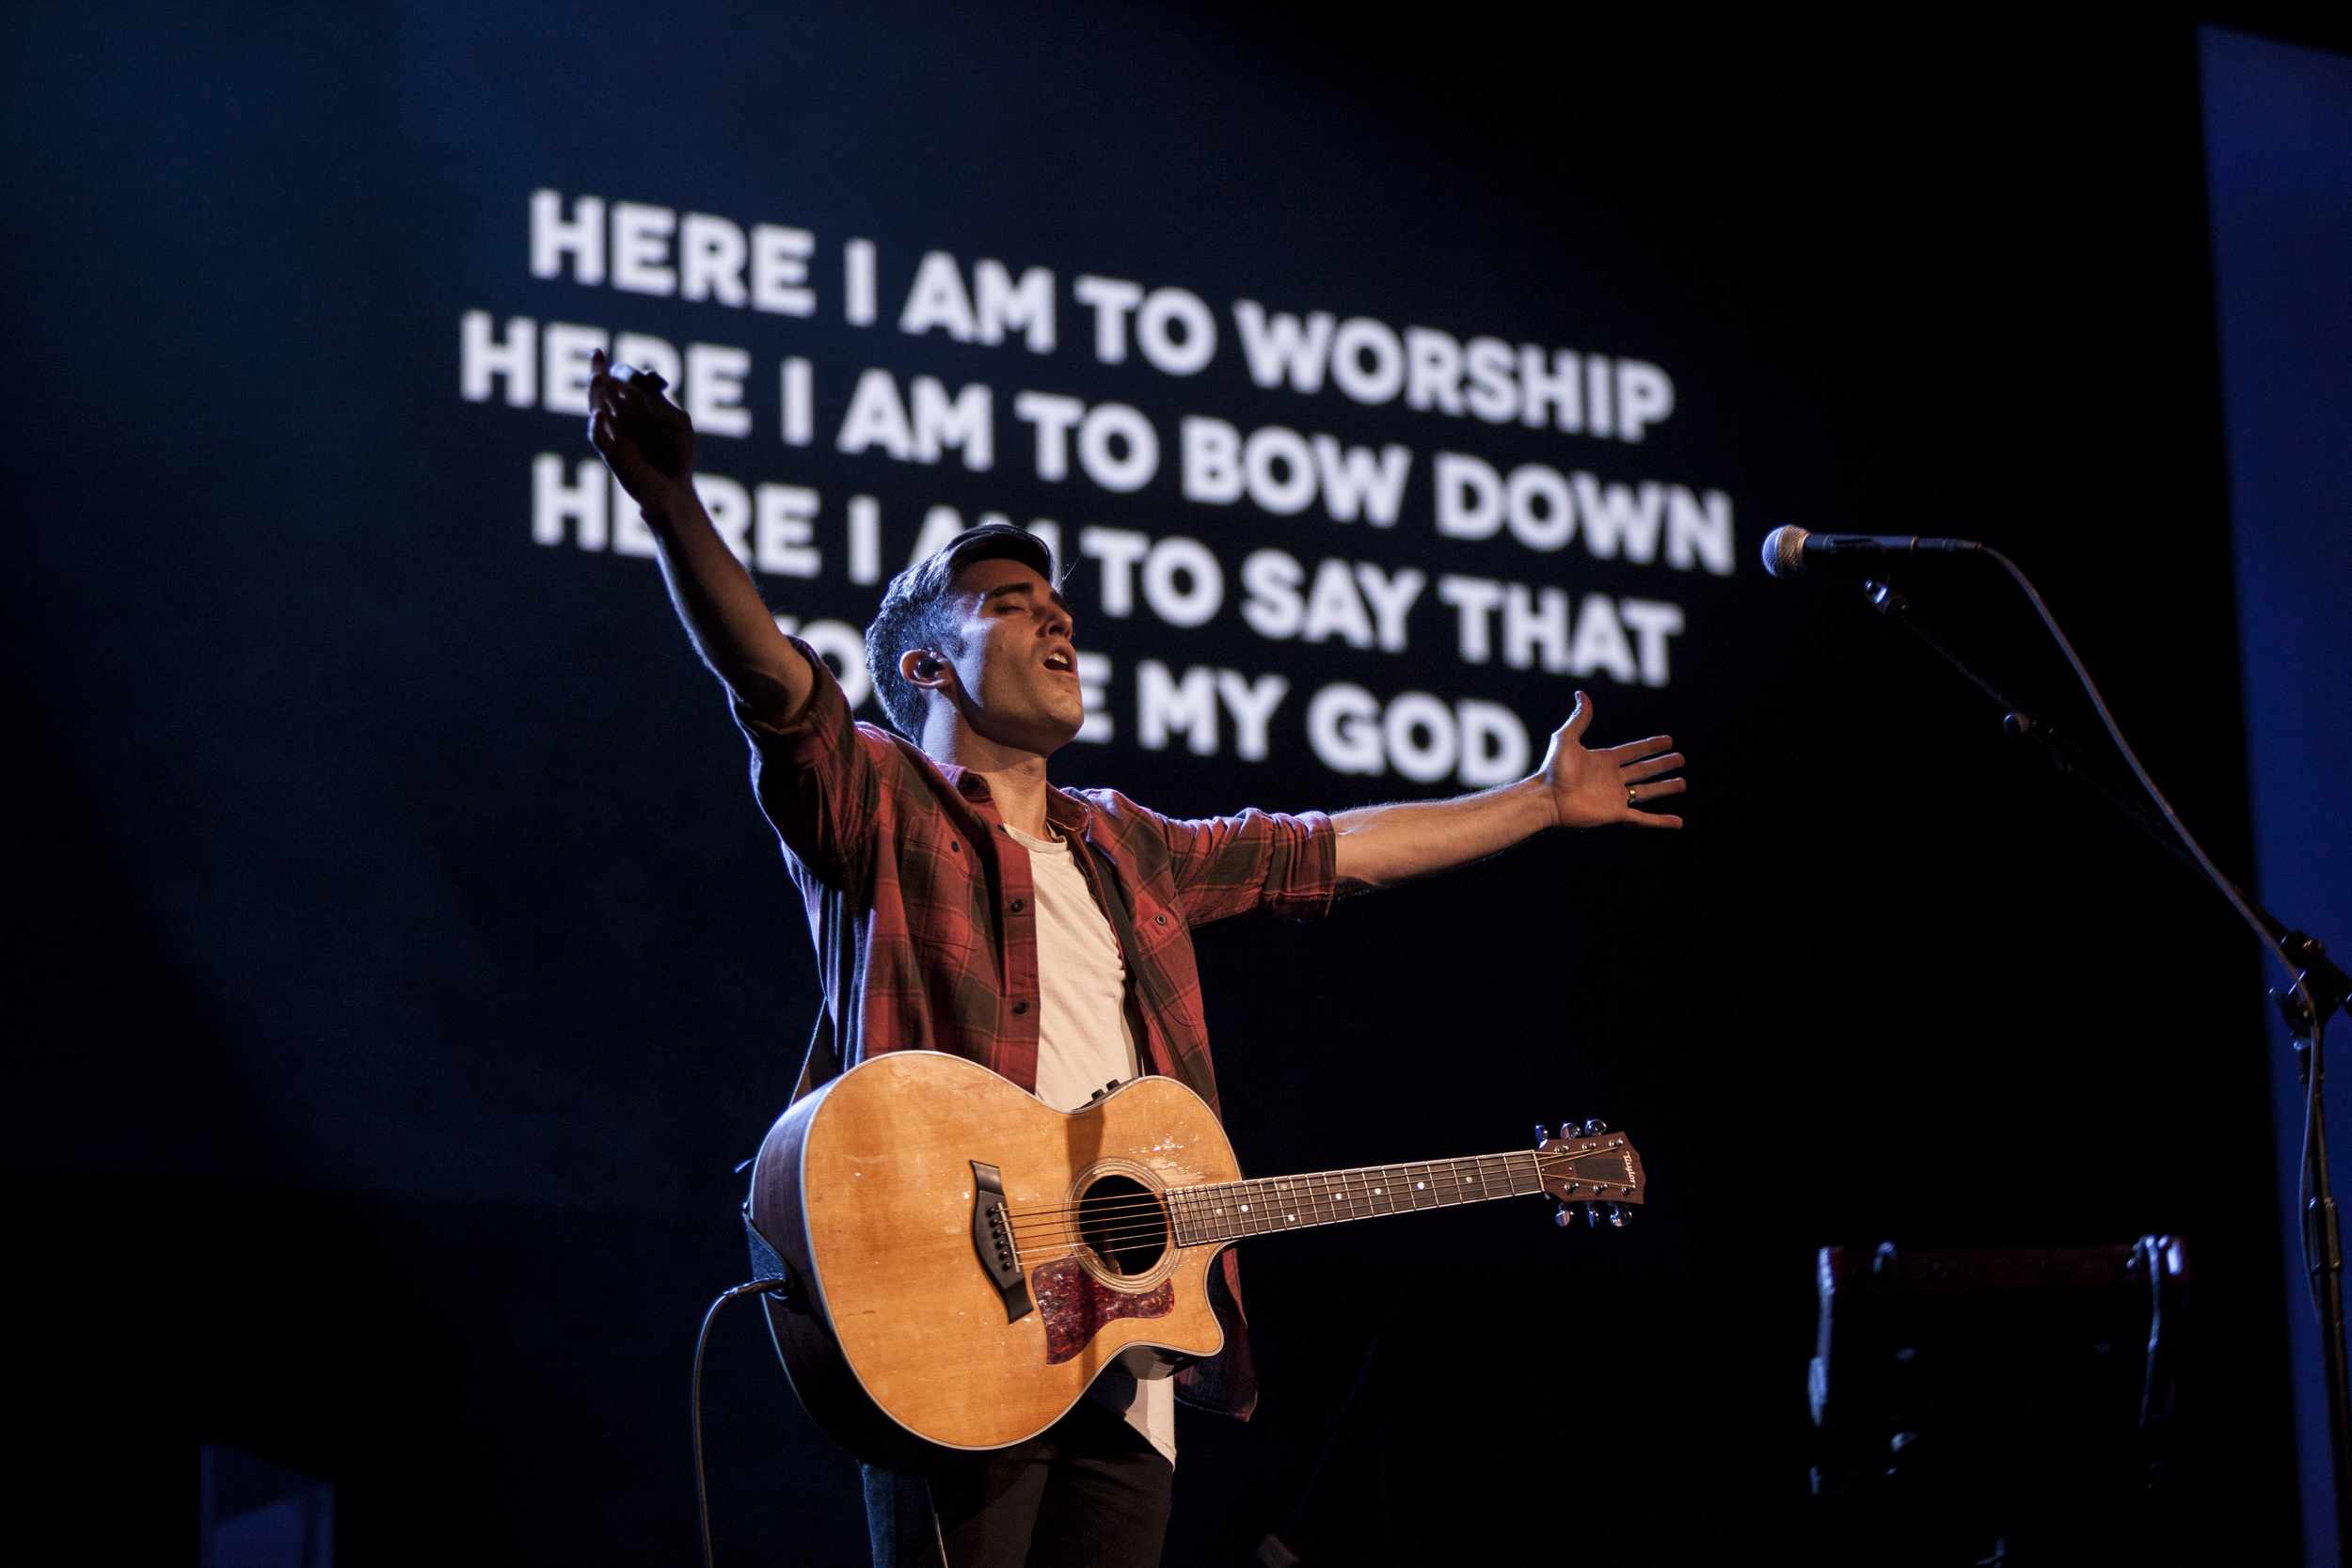 Linger_Conference_2015-Worship-656.jpg